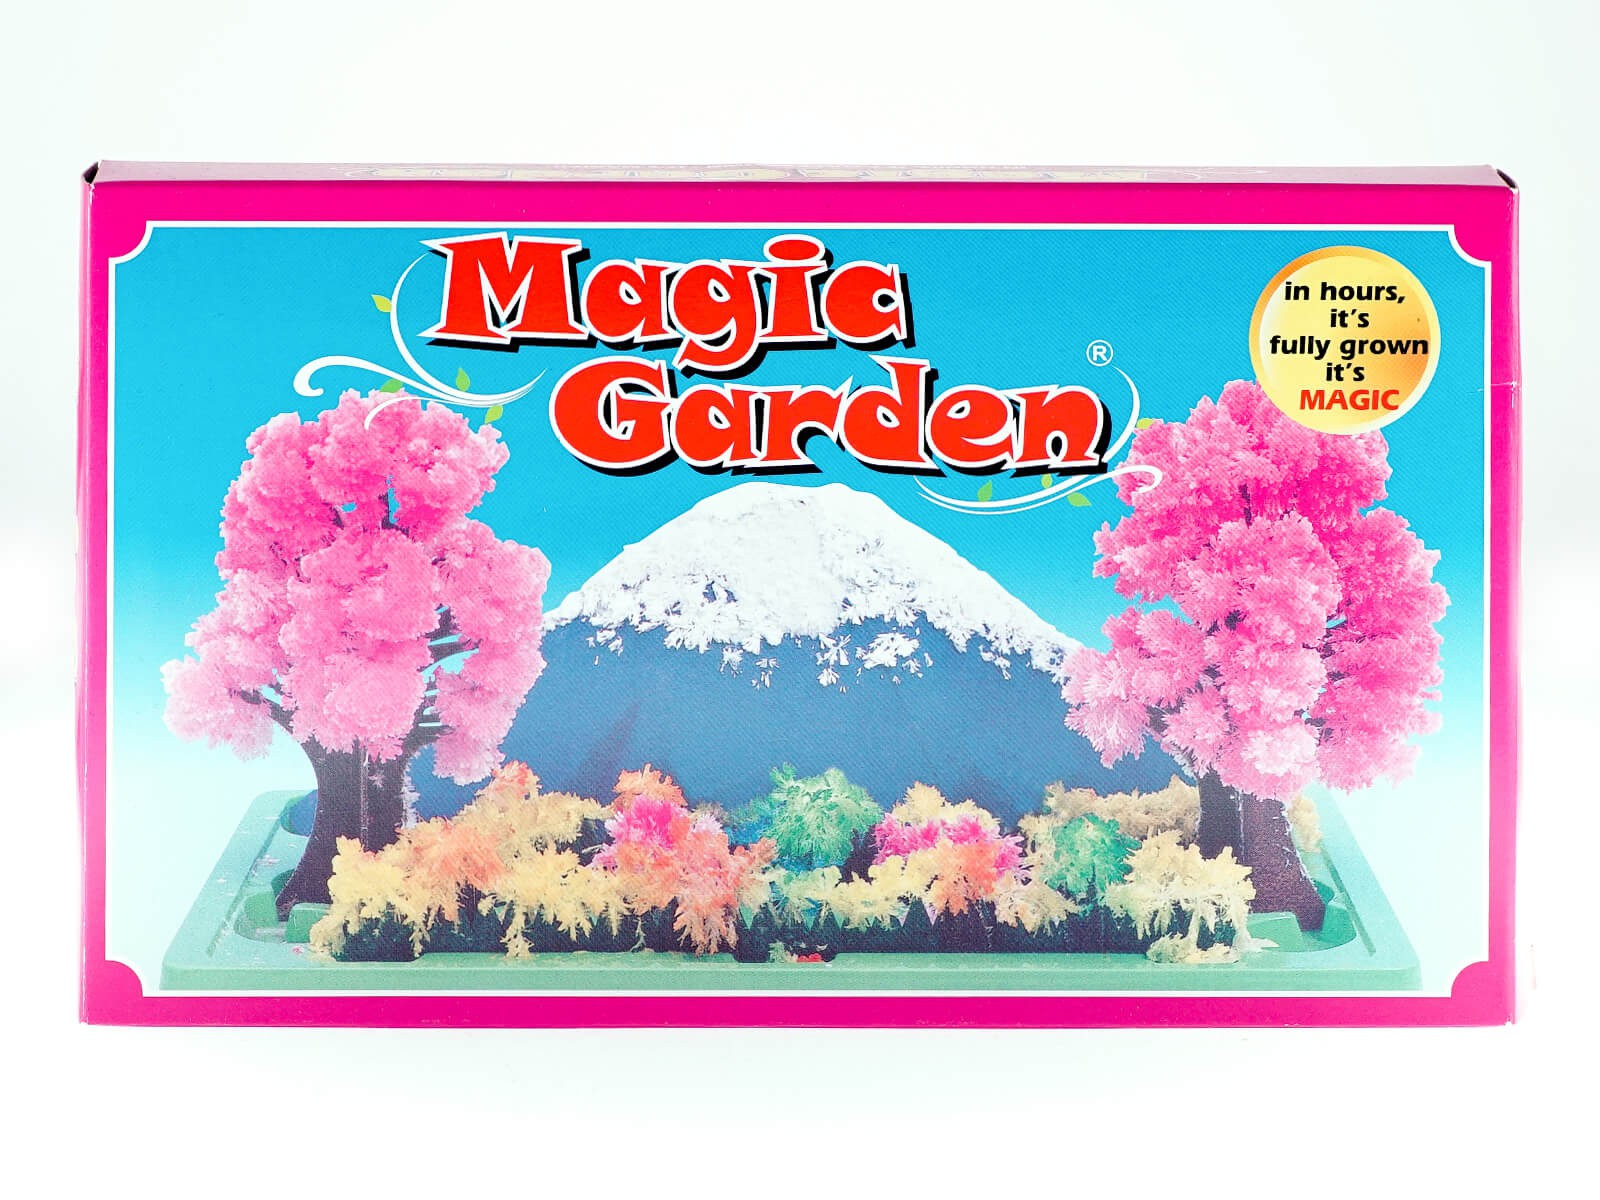 Magic Crystal Garden